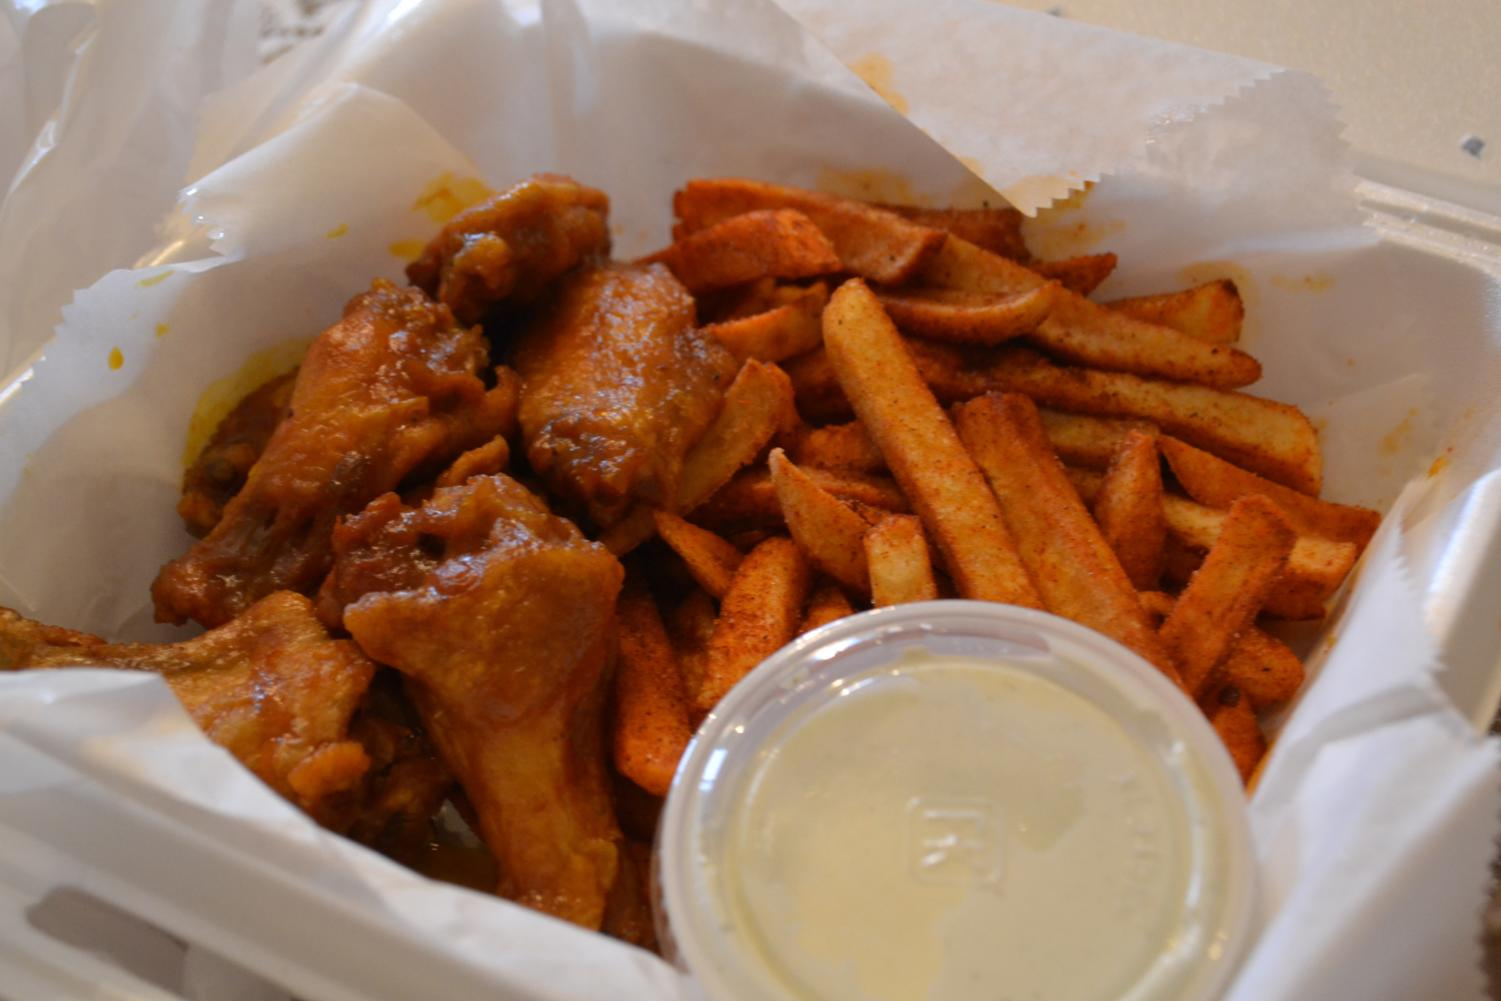 Bosses' honey-hot wing combination takeout order with a side of ranch dipping sauce.